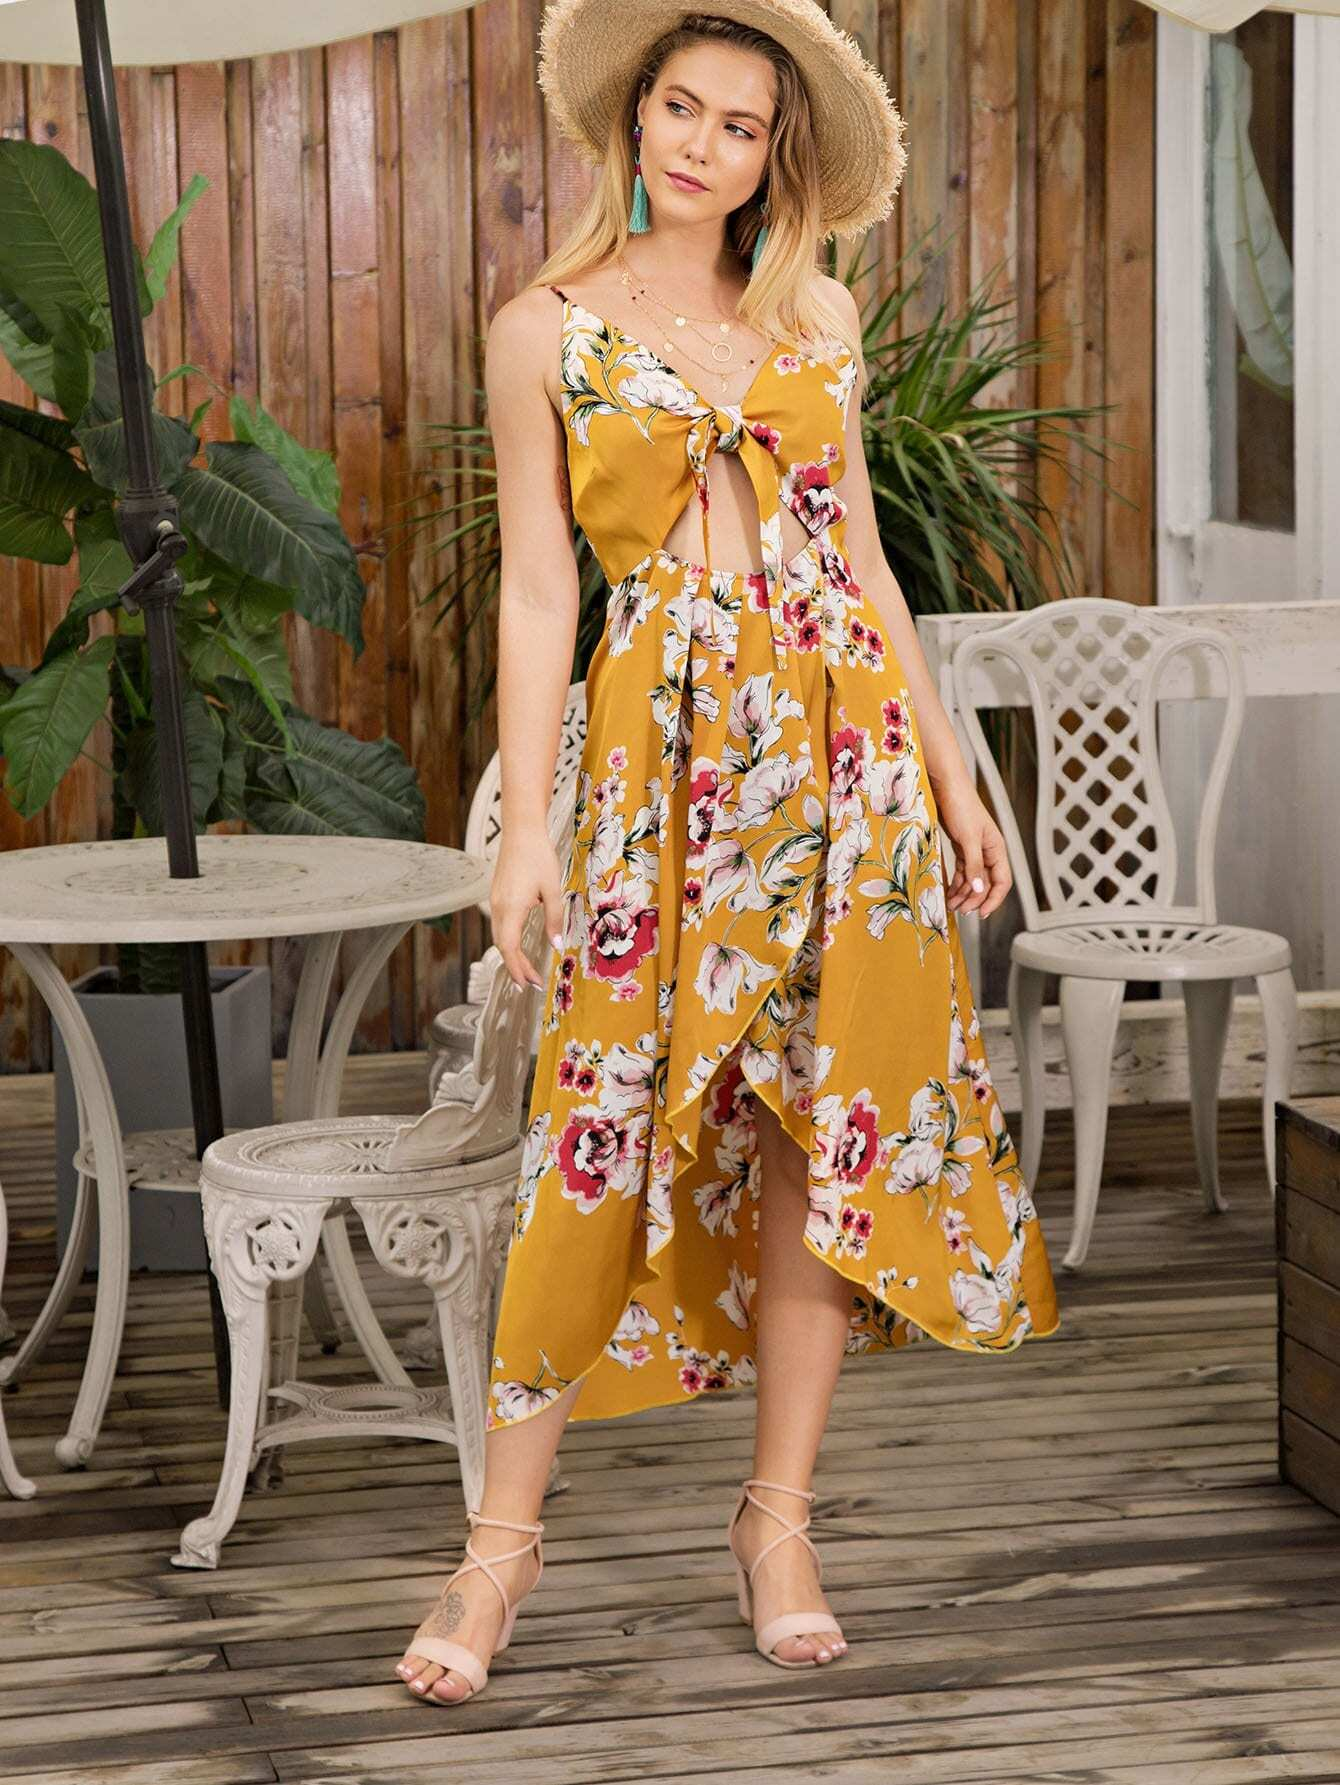 Floral Print Knot Front Cut Out Asymmetrical Hem Dress подвесная люстра lussole loft lsp 9556